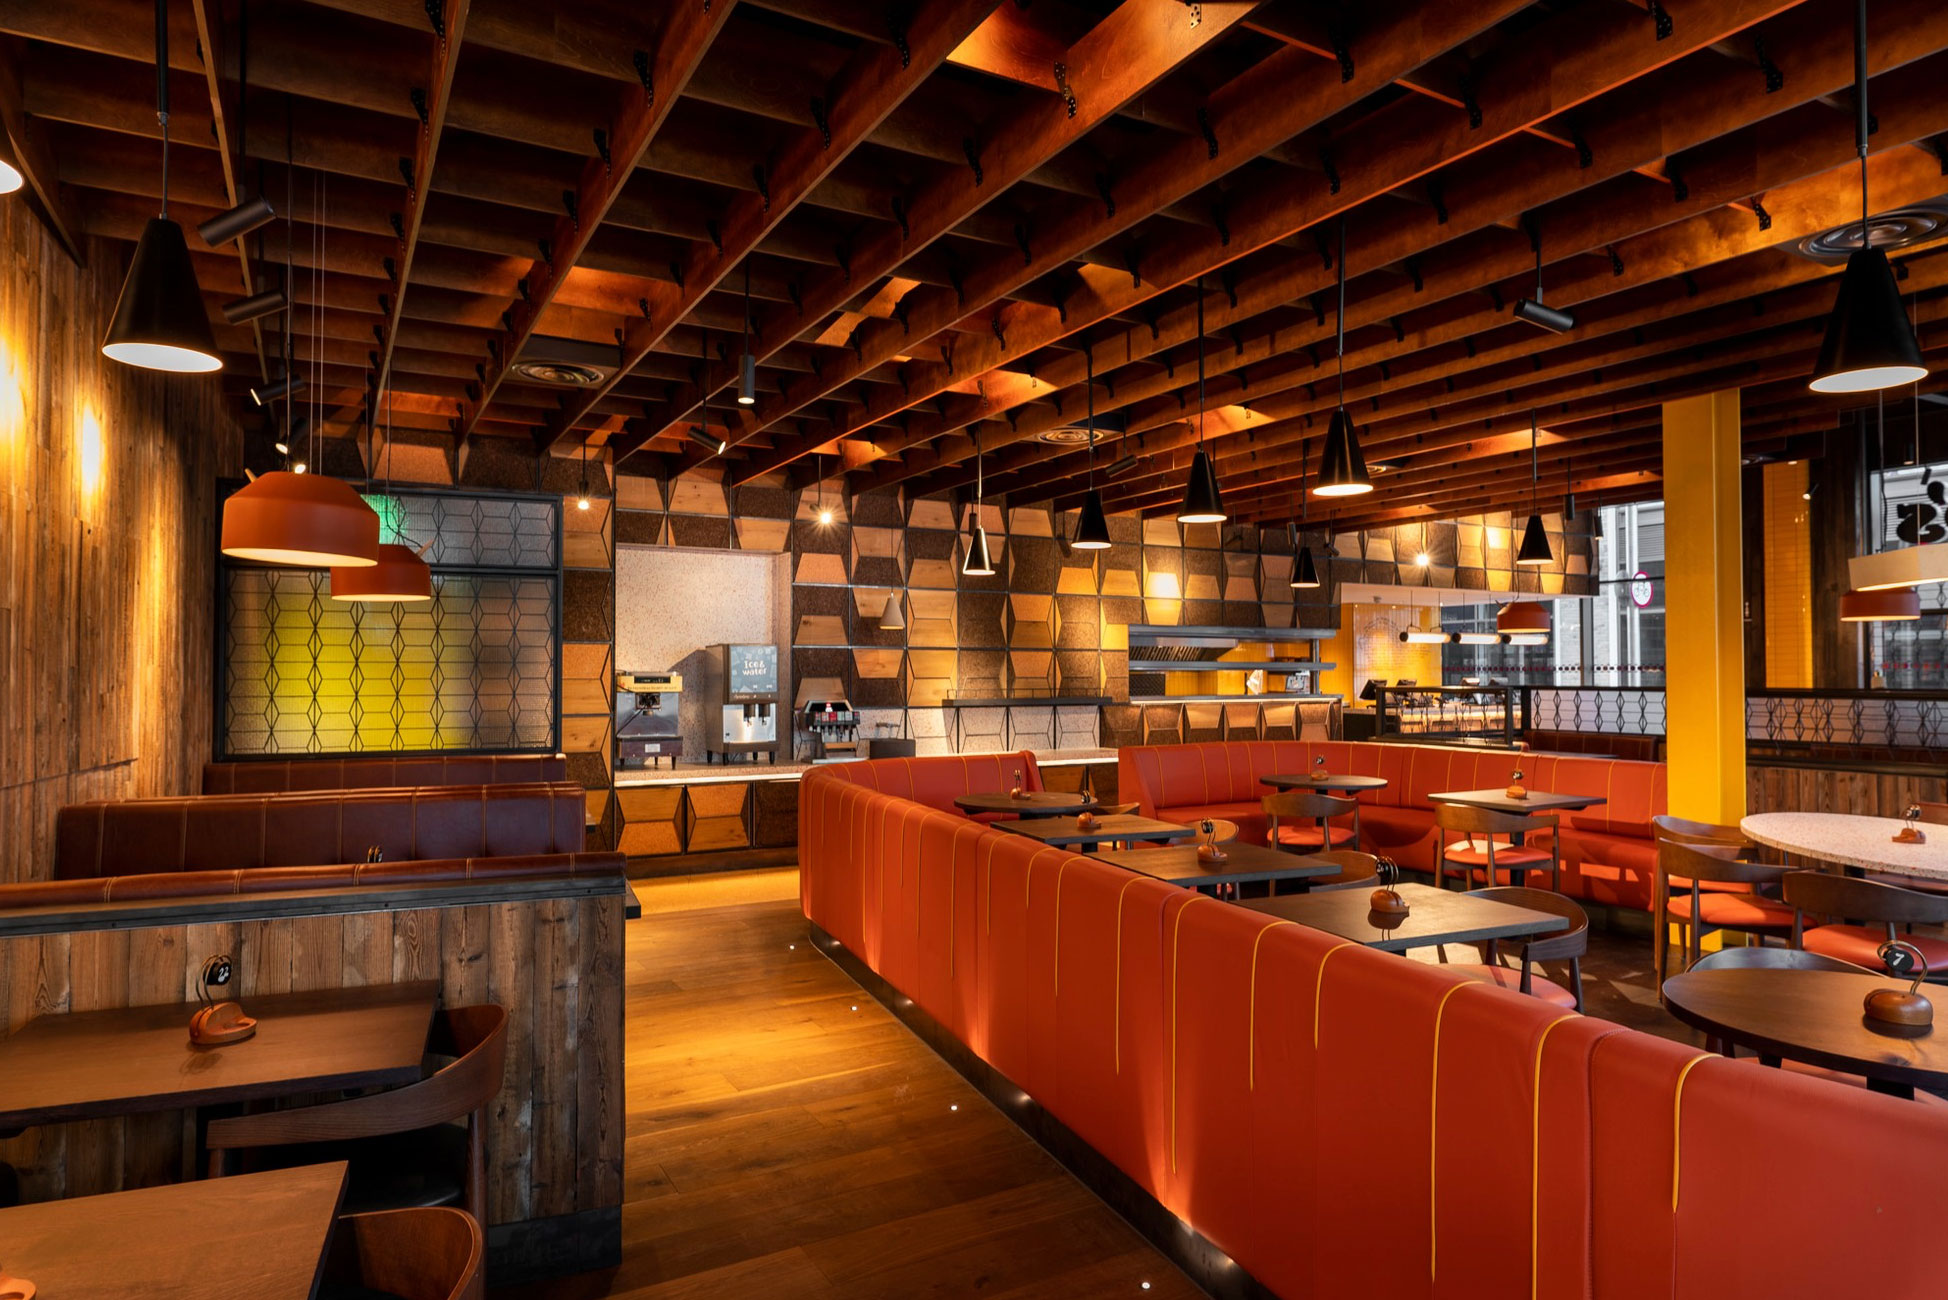 Nando's eatery interior with leather booths and wood cladding